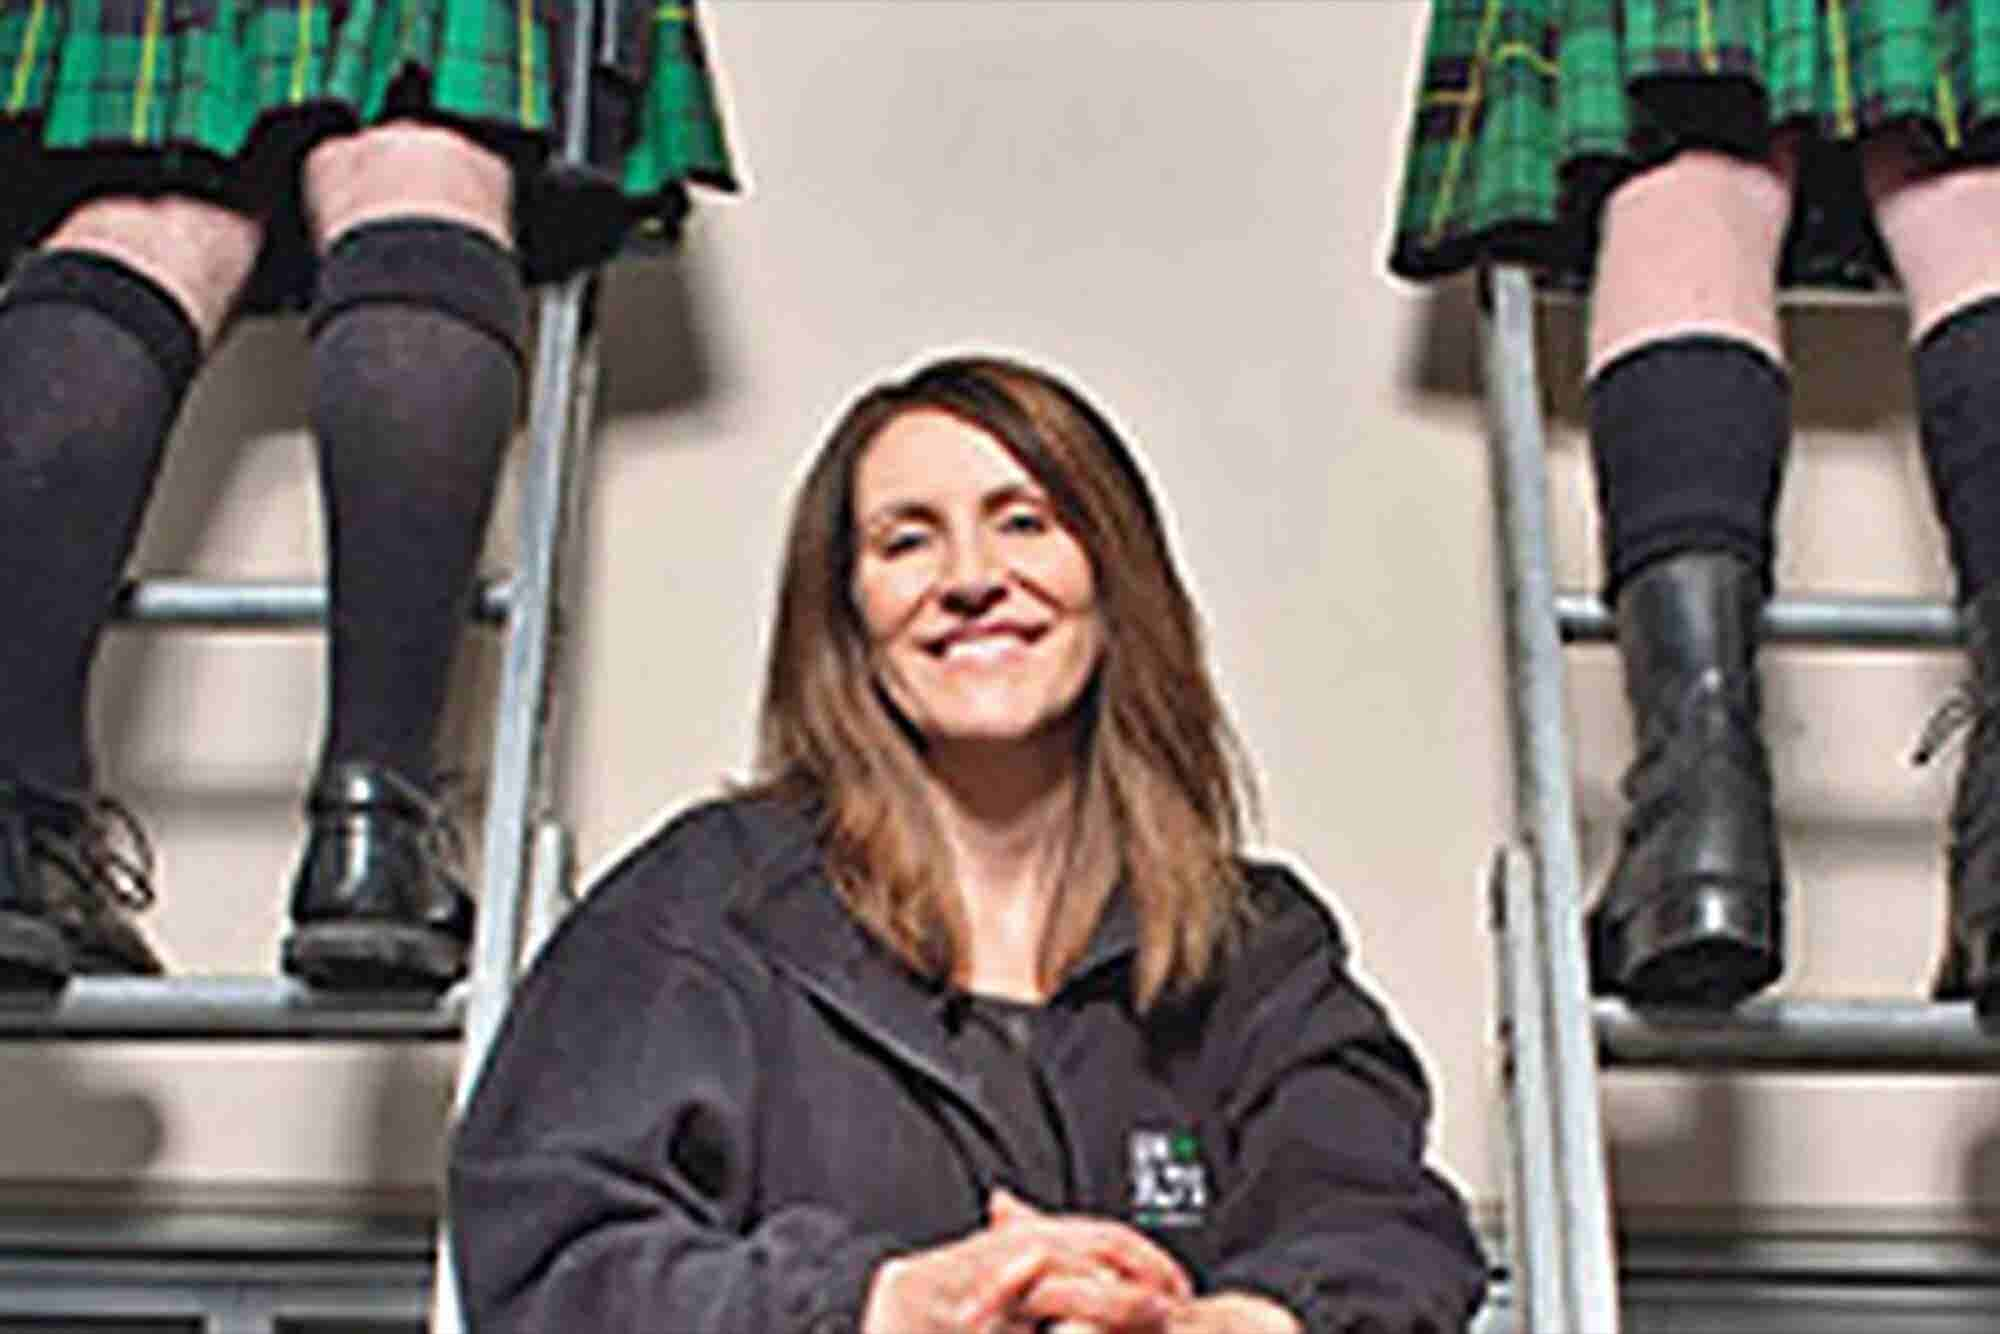 A Window Washer Puts Workers in Kilts to Skirt Competition and Build I...